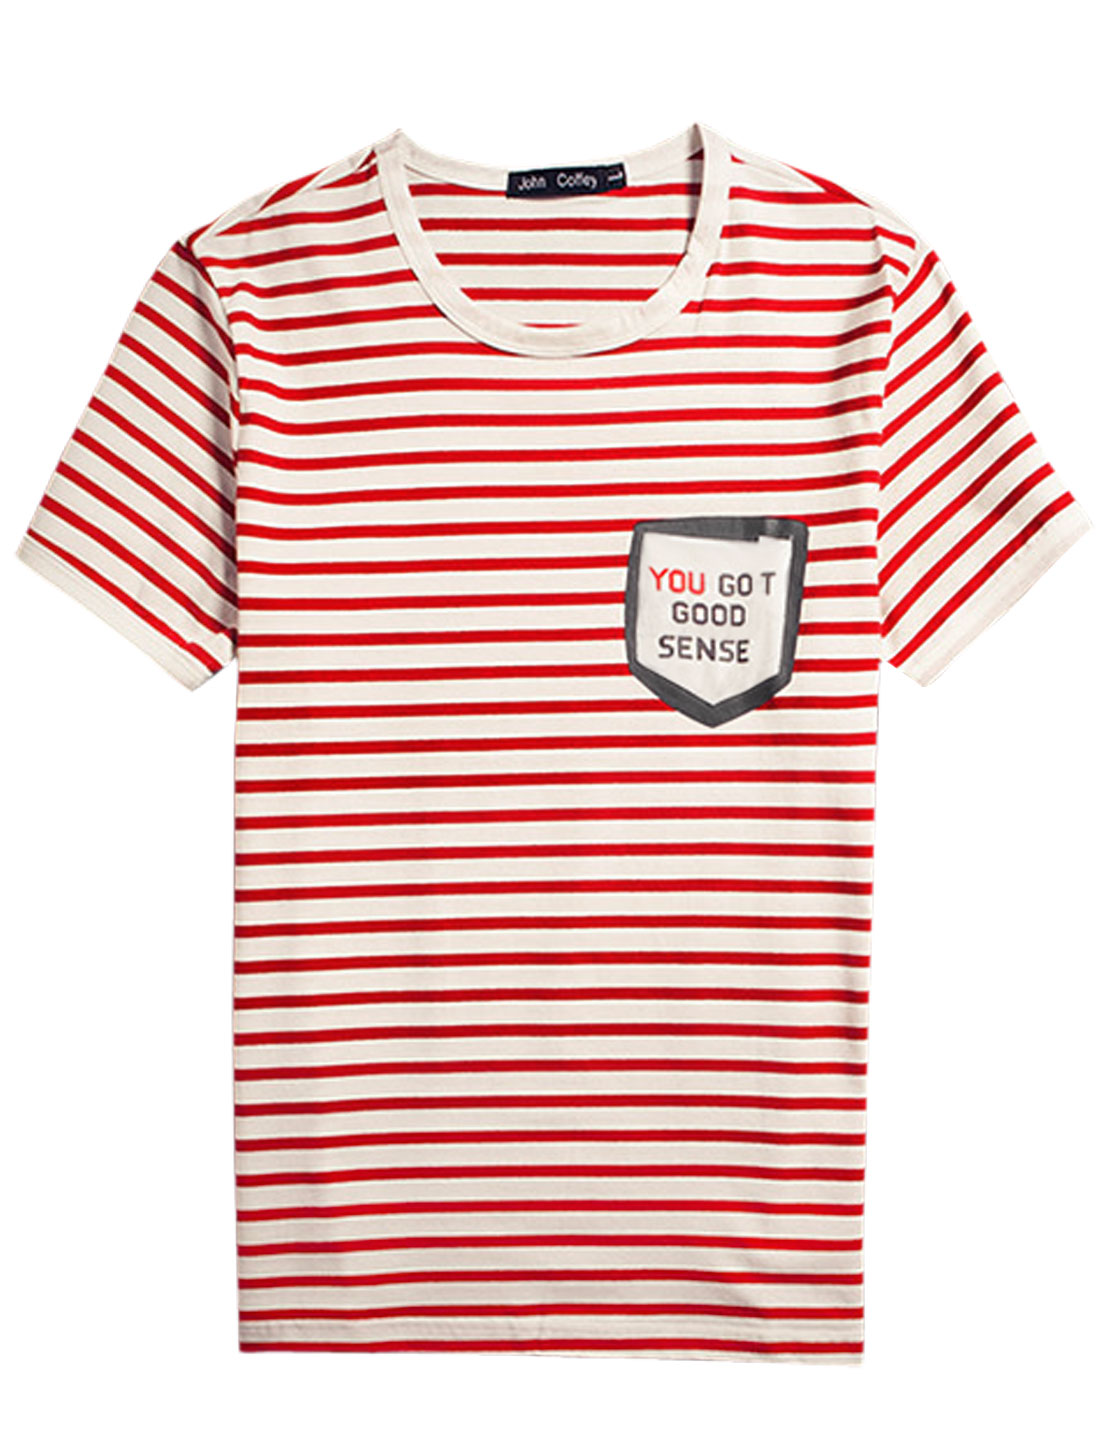 Men Stripes Patch Chest Pocket Letters Prints Detail Tee Reds Whites S